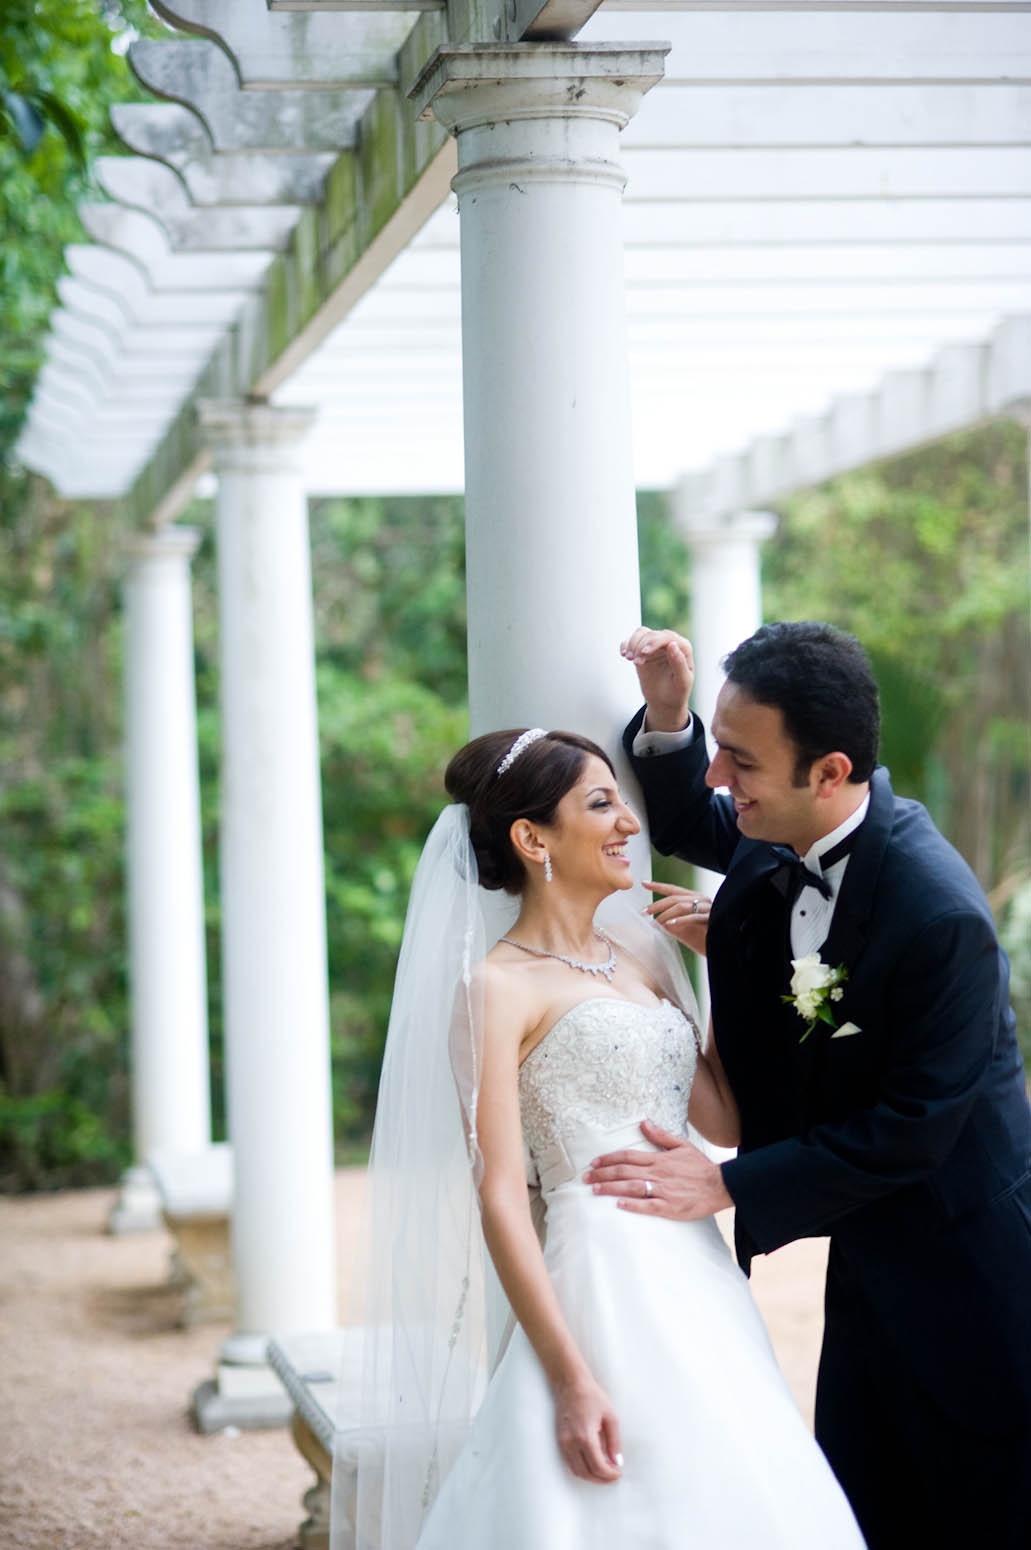 laguna_gloria_wedding_21